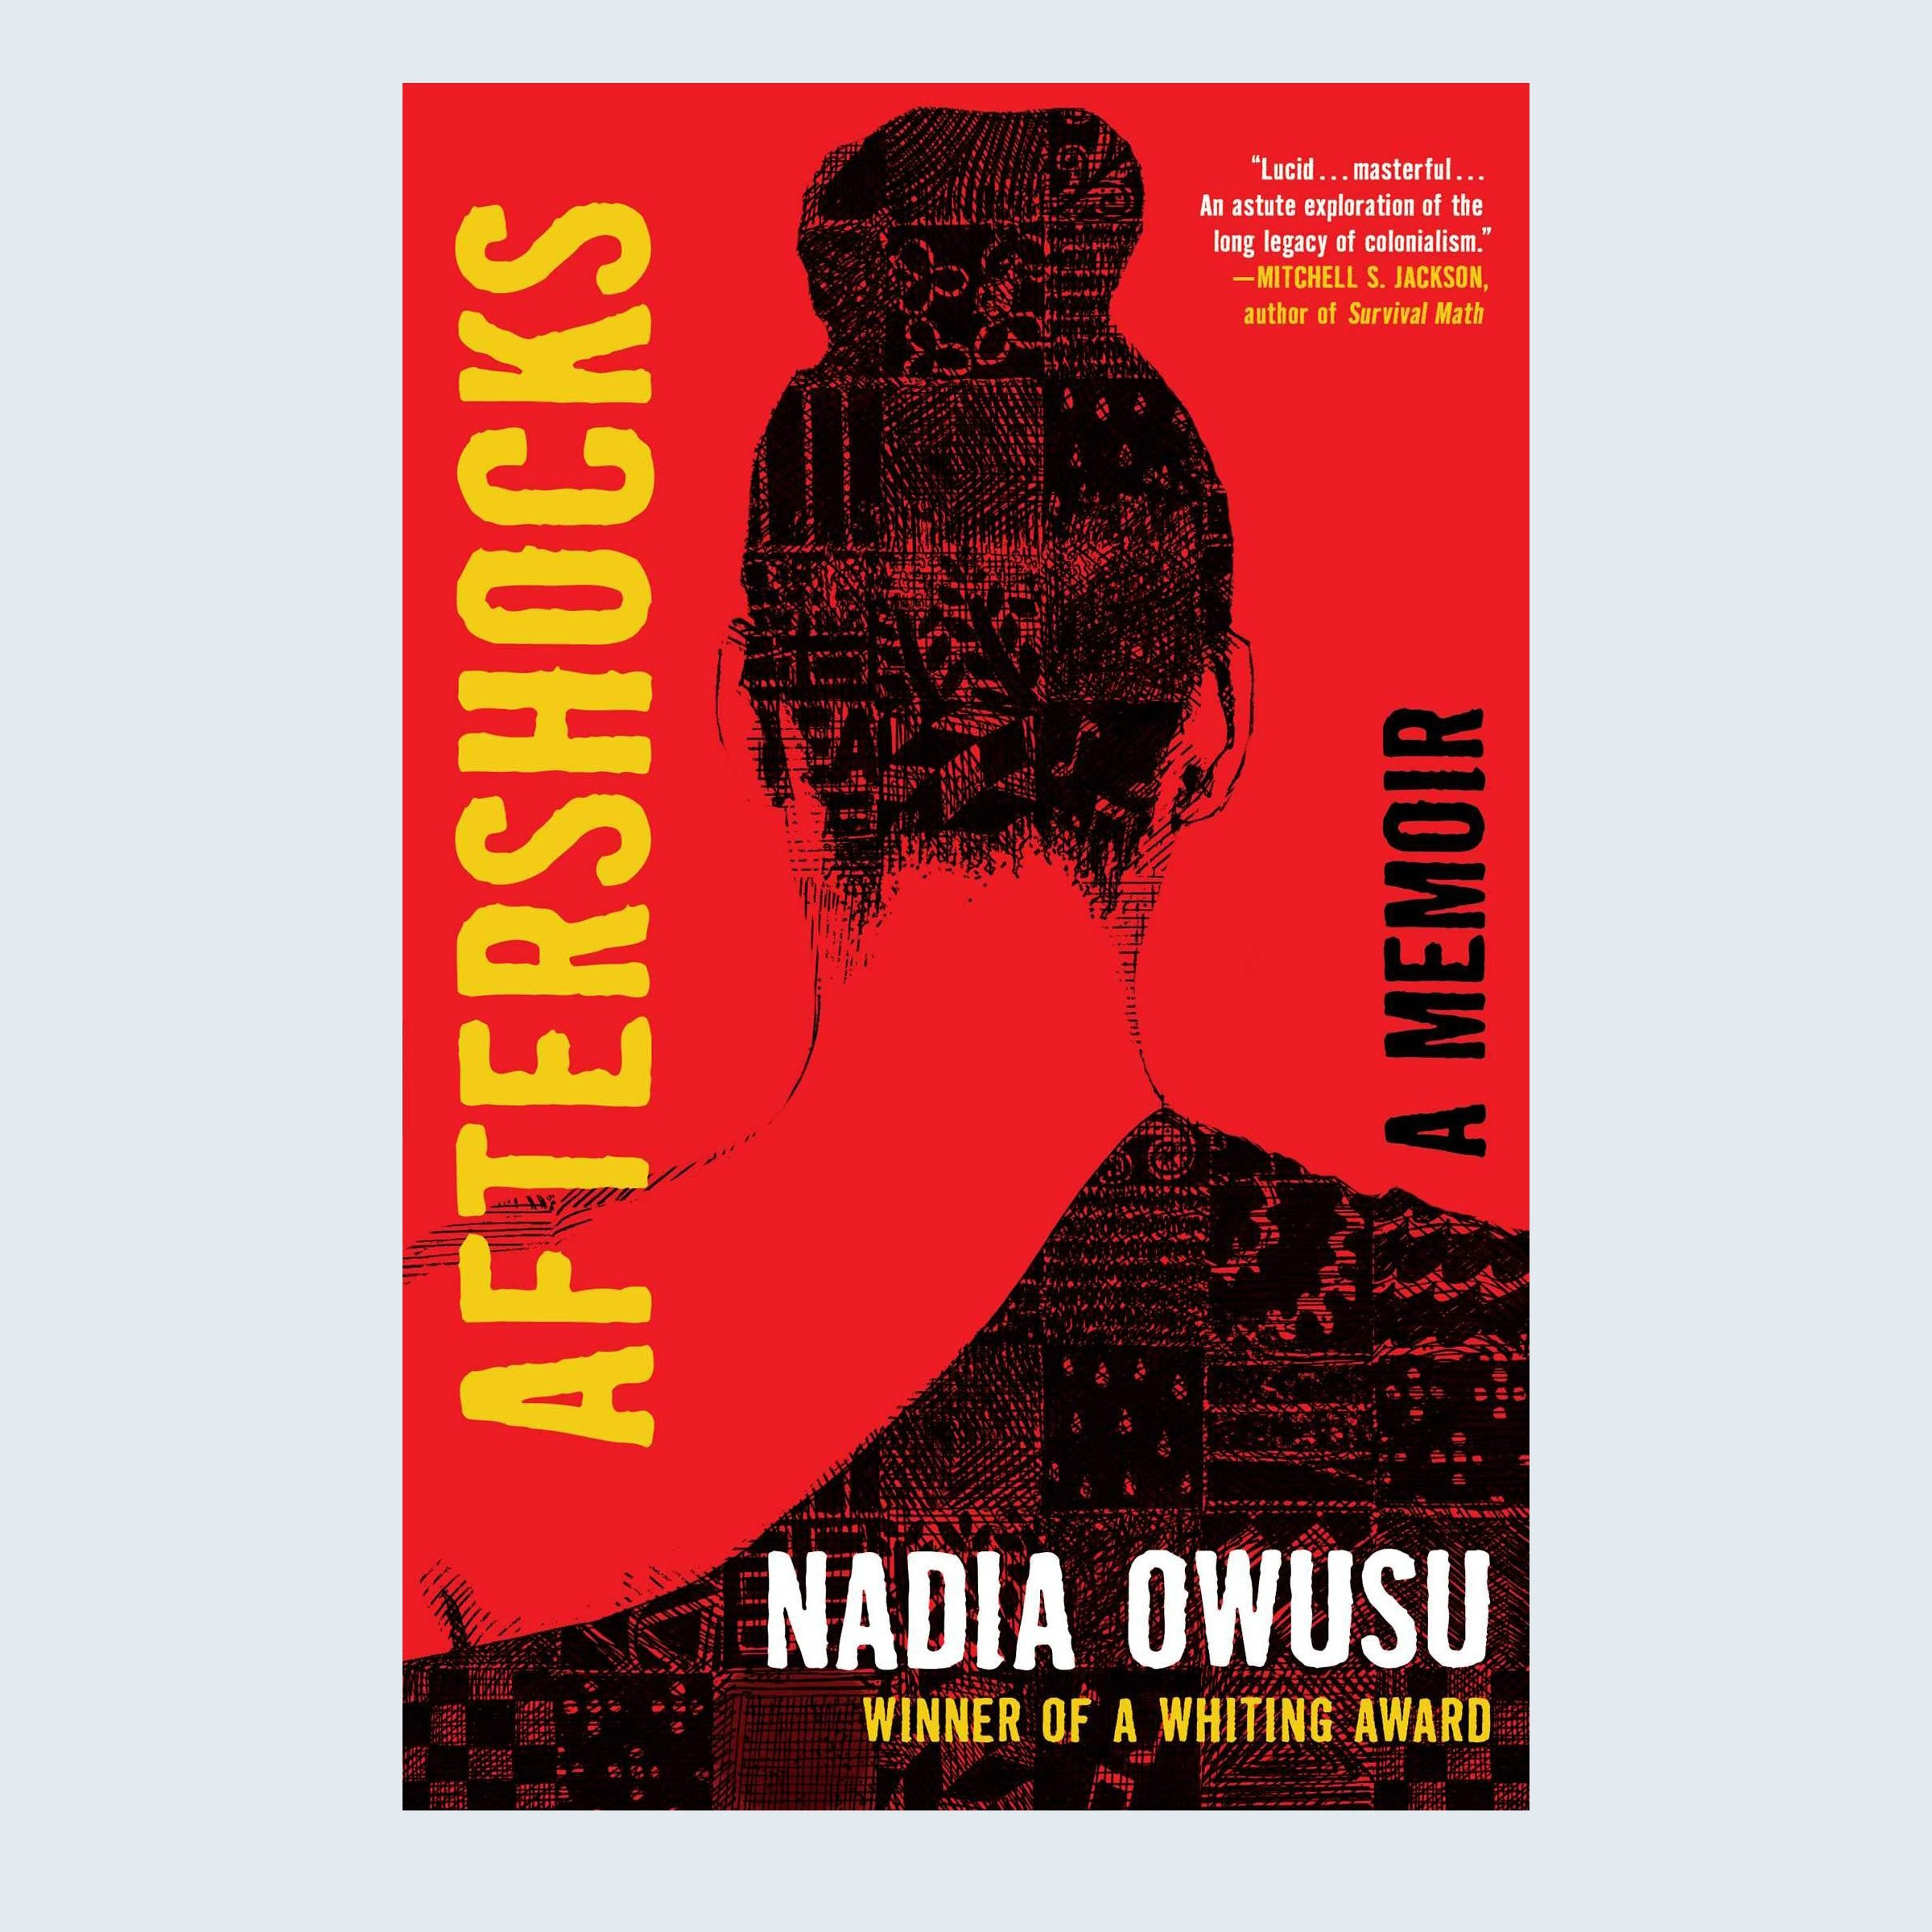 Aftershocks: A Memoir by Nadia Owusu